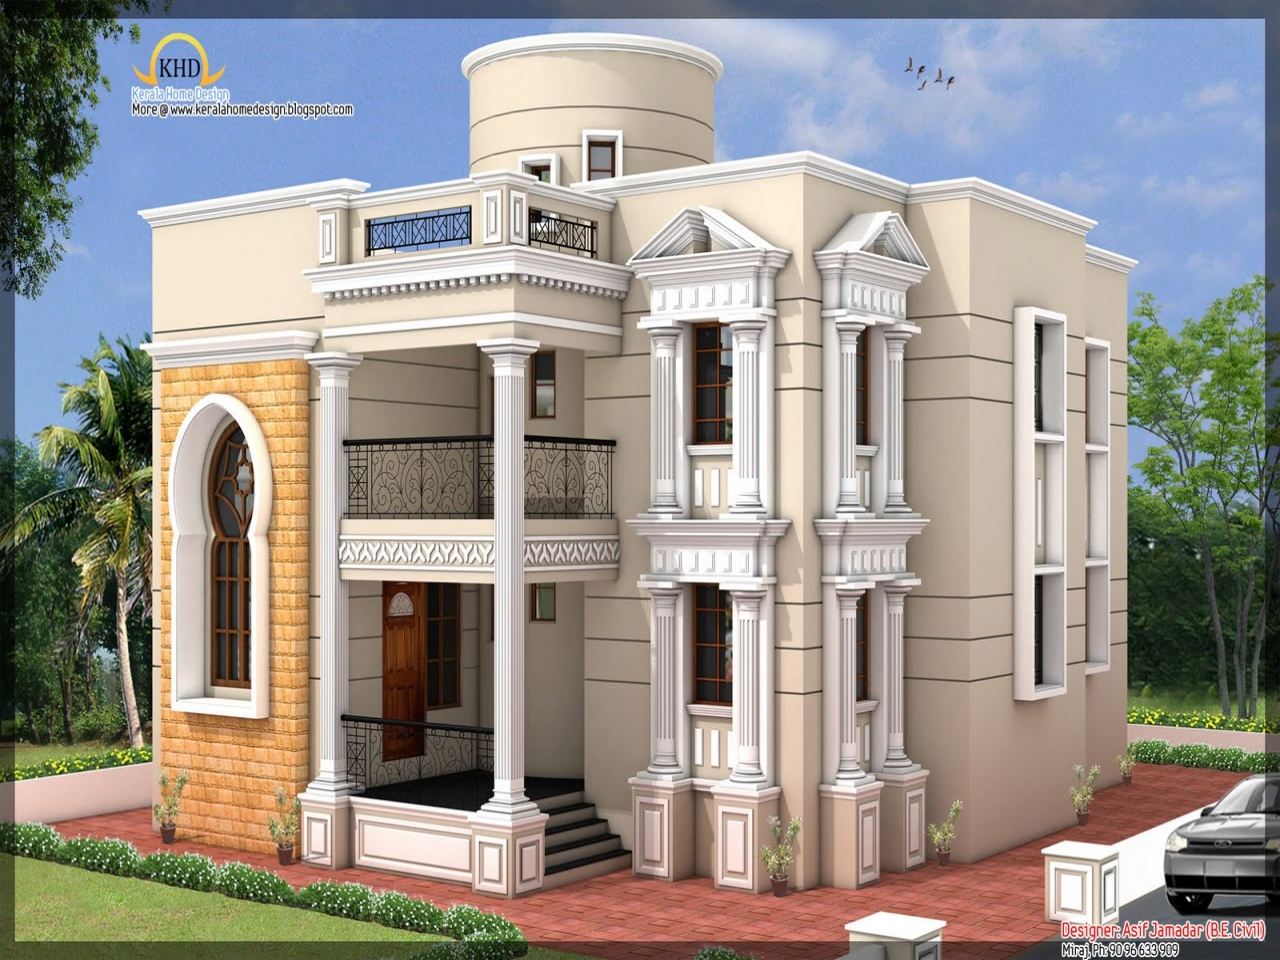 Barn style house plans design house plans style homes for Arabian home designs